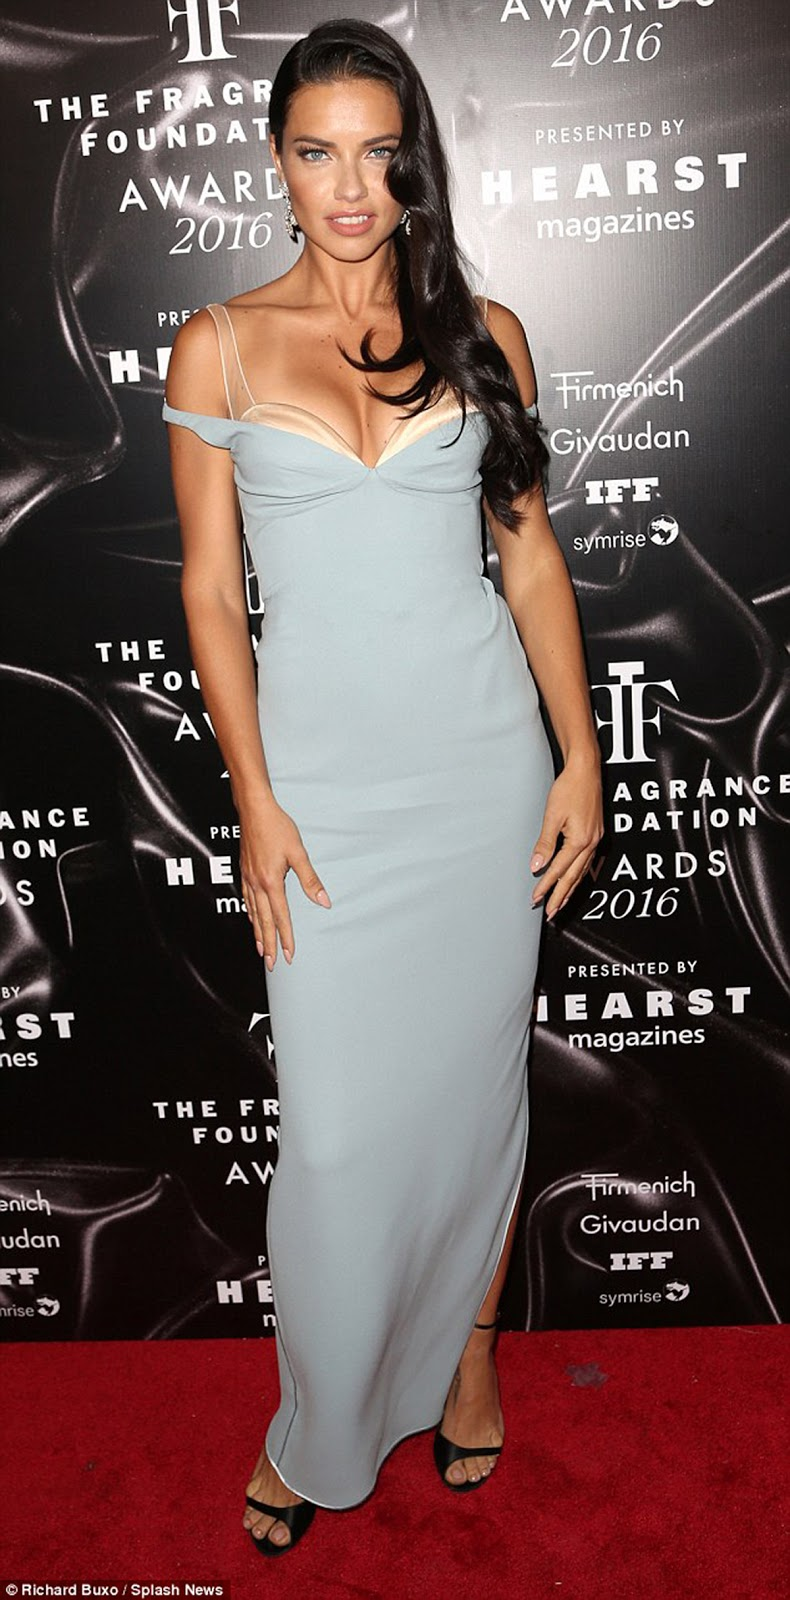 MODEL ADRIANA LIMA - Adriana Lima was smoking hot in powder blue Marc Jacobs as she arrived at the Fragrance Foundation Awards in New York City on Tuesday evening